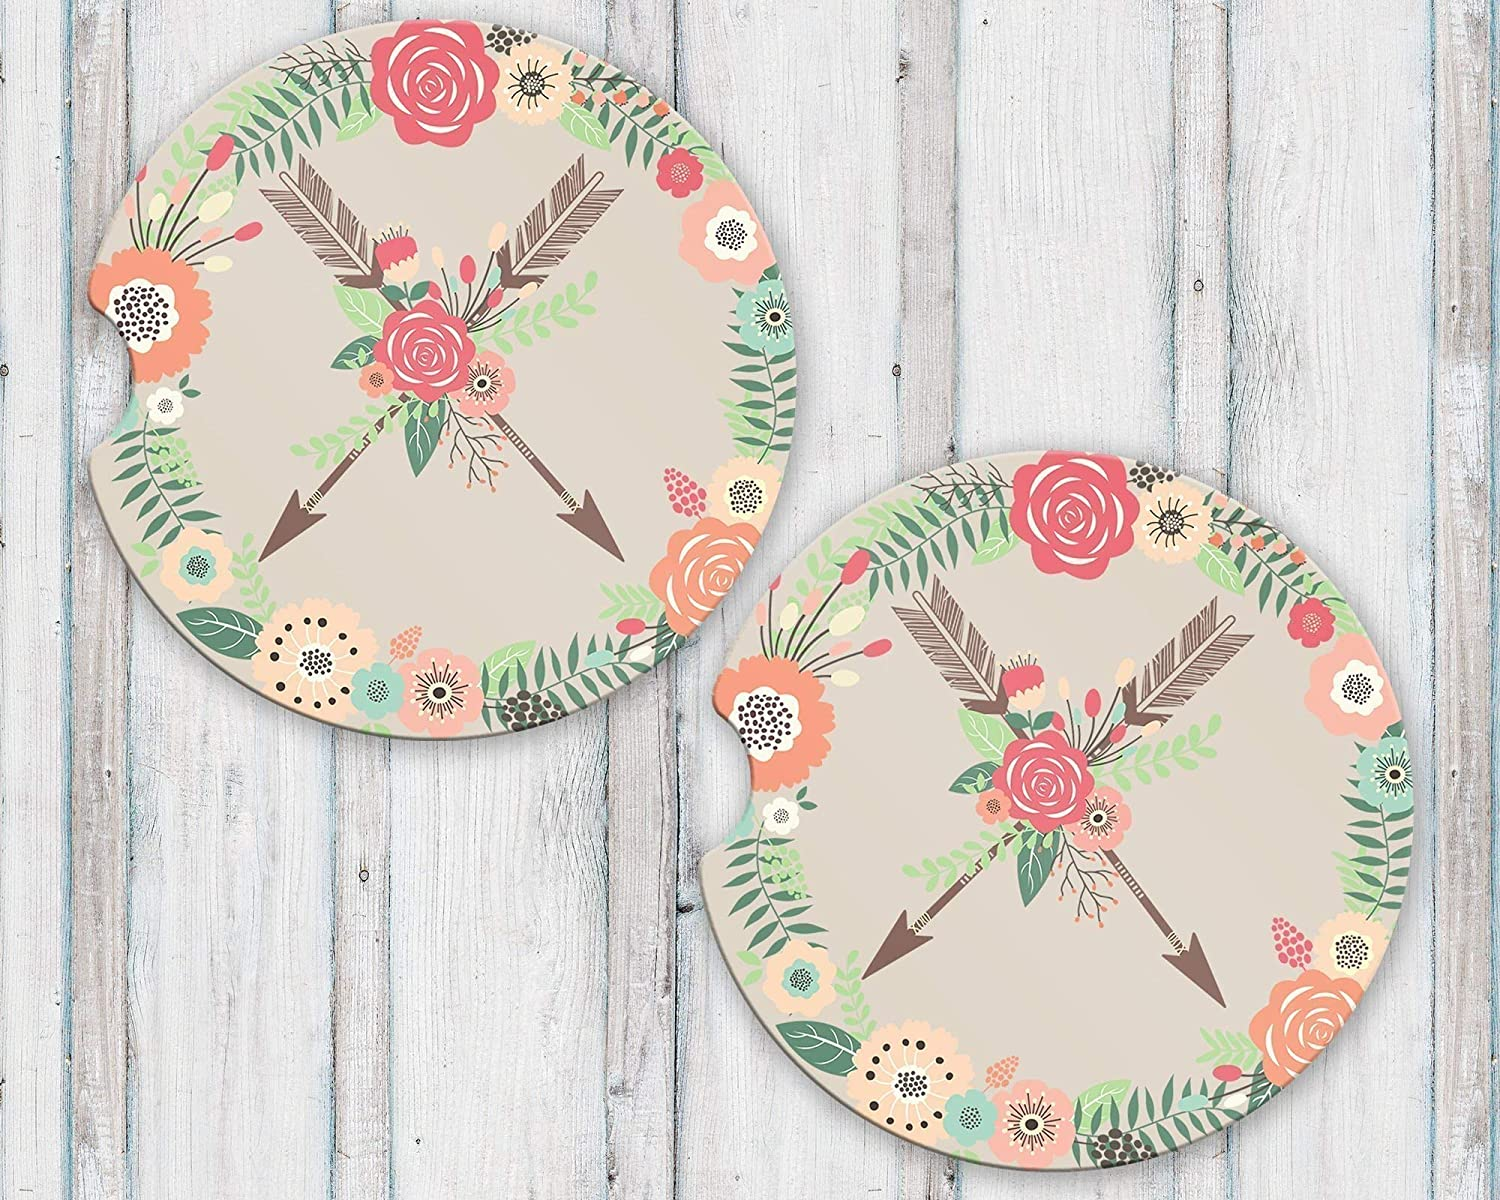 Crossed Arrows Sandstone Car Coasters Boho Floral Wreath Flower Arrow Tribal Set of 2